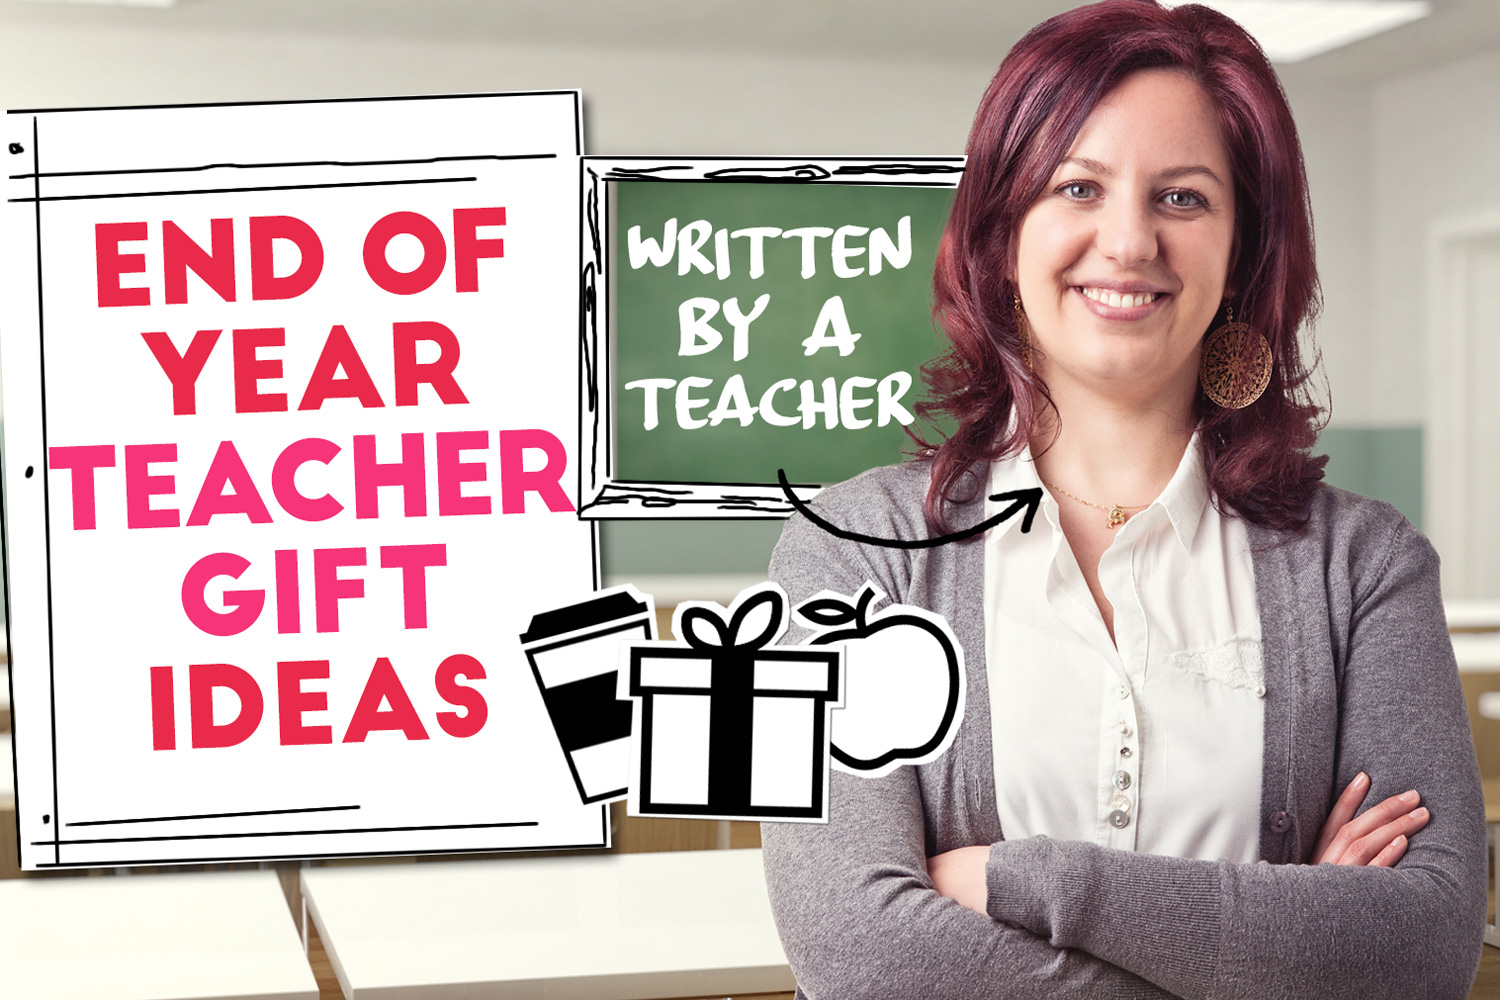 best teacher gift ideas for end of school year written by a teacher no diy easy inexpensive ideas